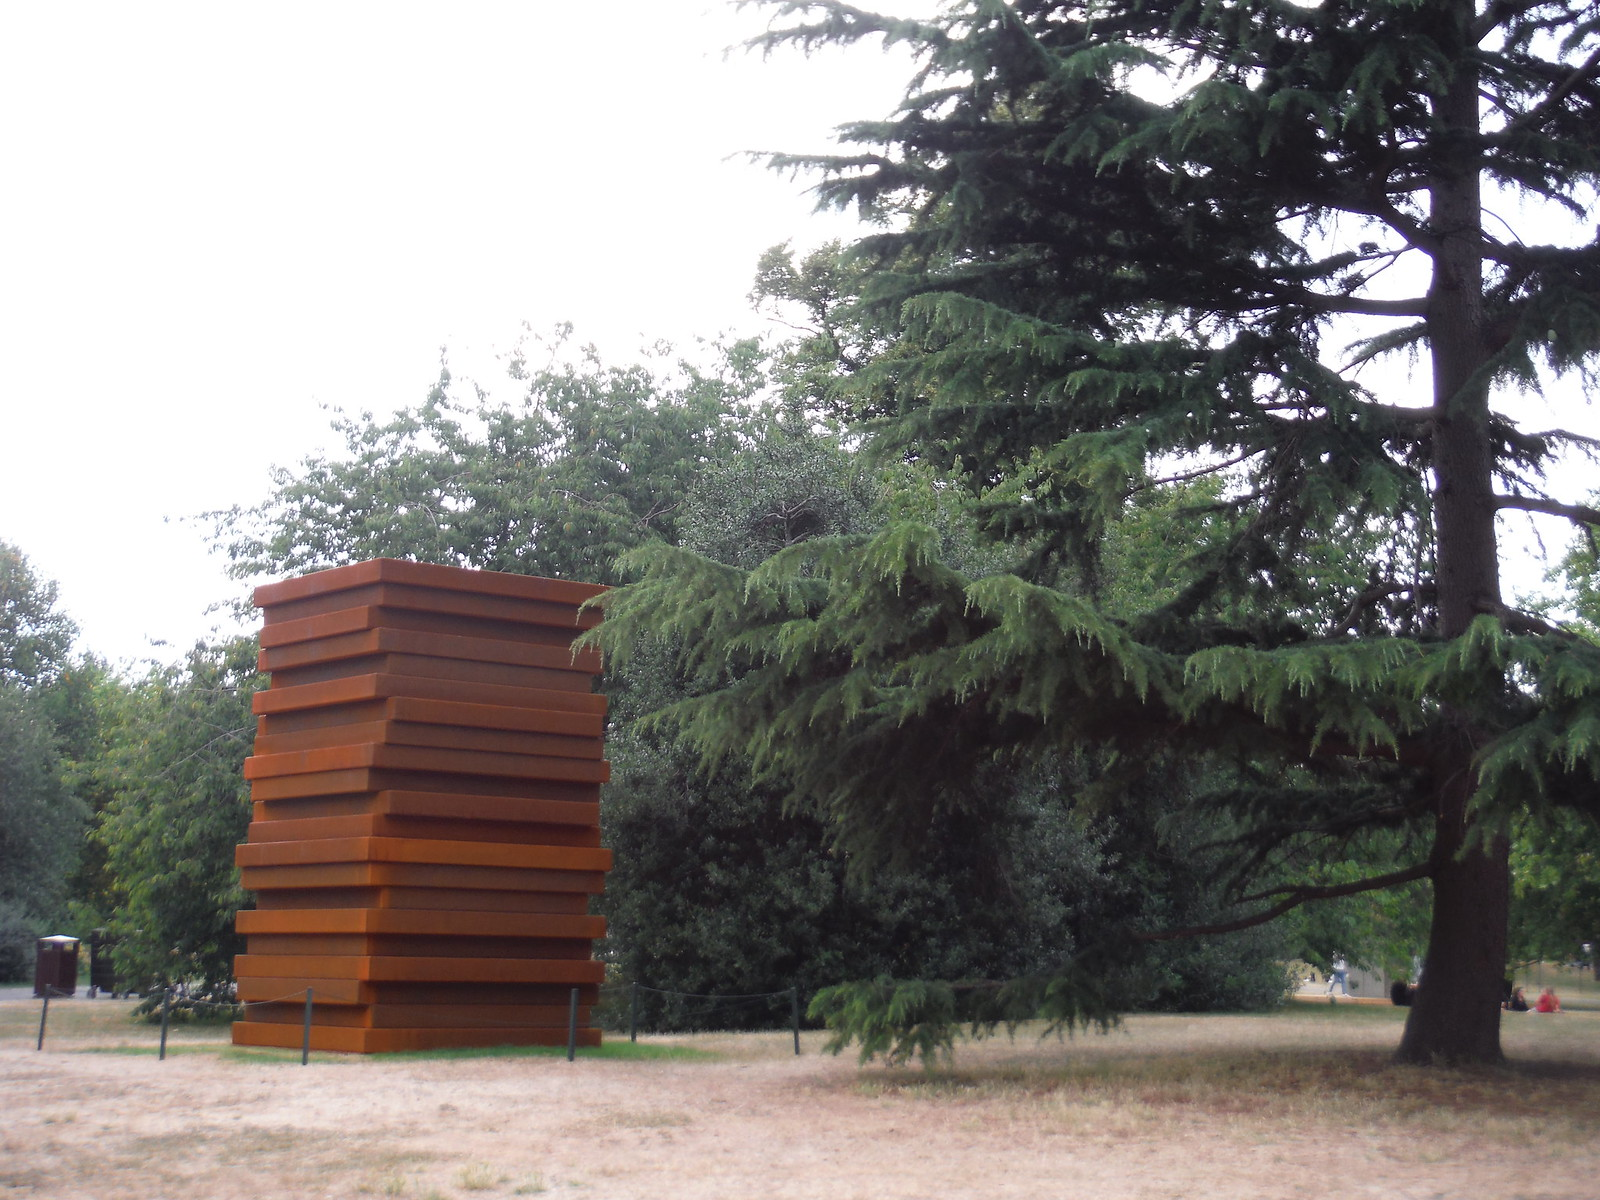 Frieze Sculpture Park 2018: Sean Scully, 'Shadow Stack' SWC Short Walk 6 - Regent's Park and Primrose Hill